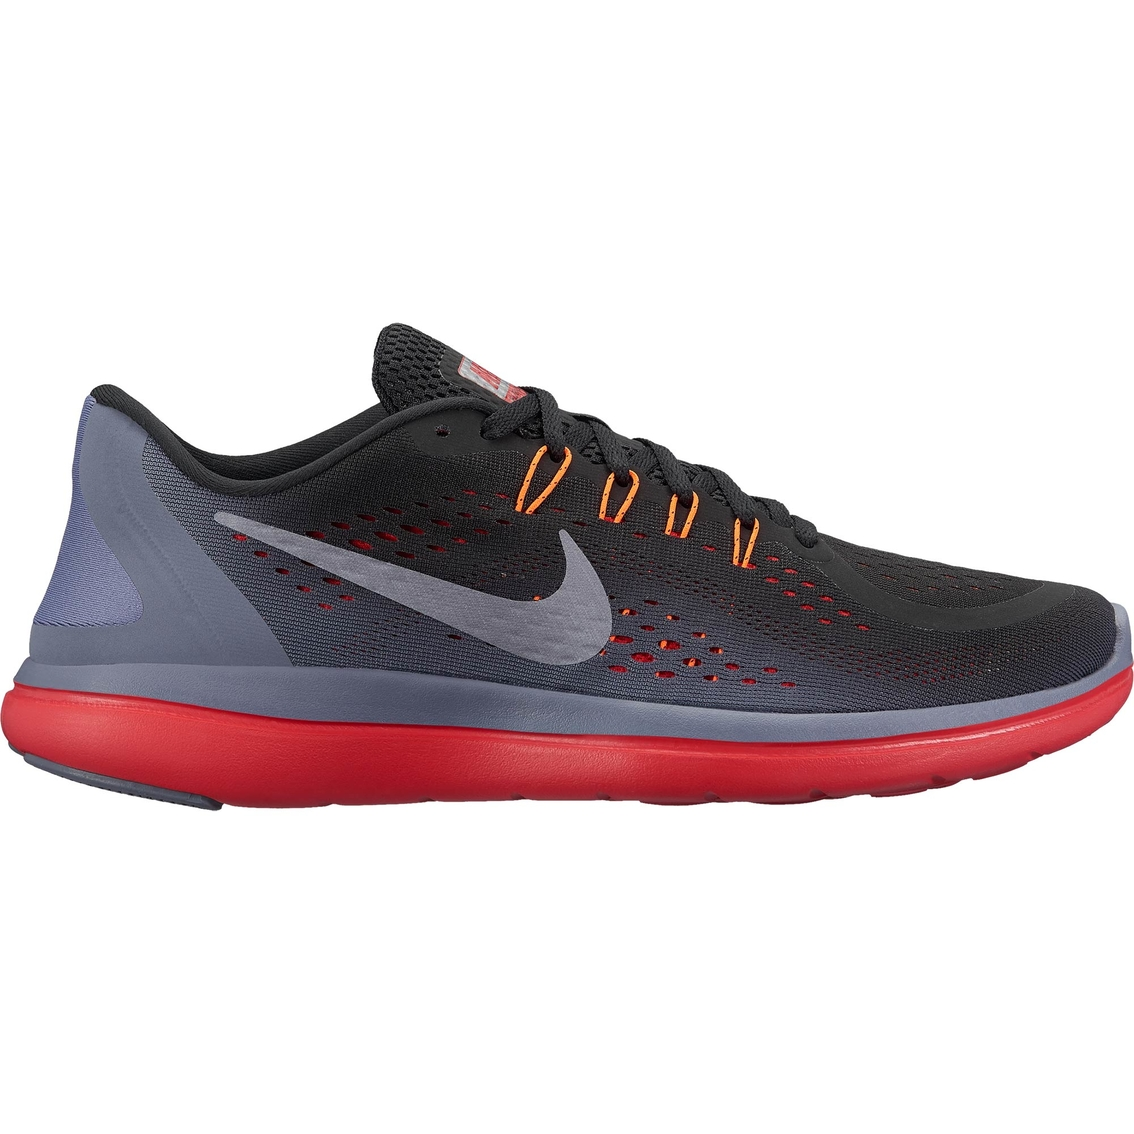 6cf5bf026dd Nike Men s Flex 2017 Rn Running Shoes